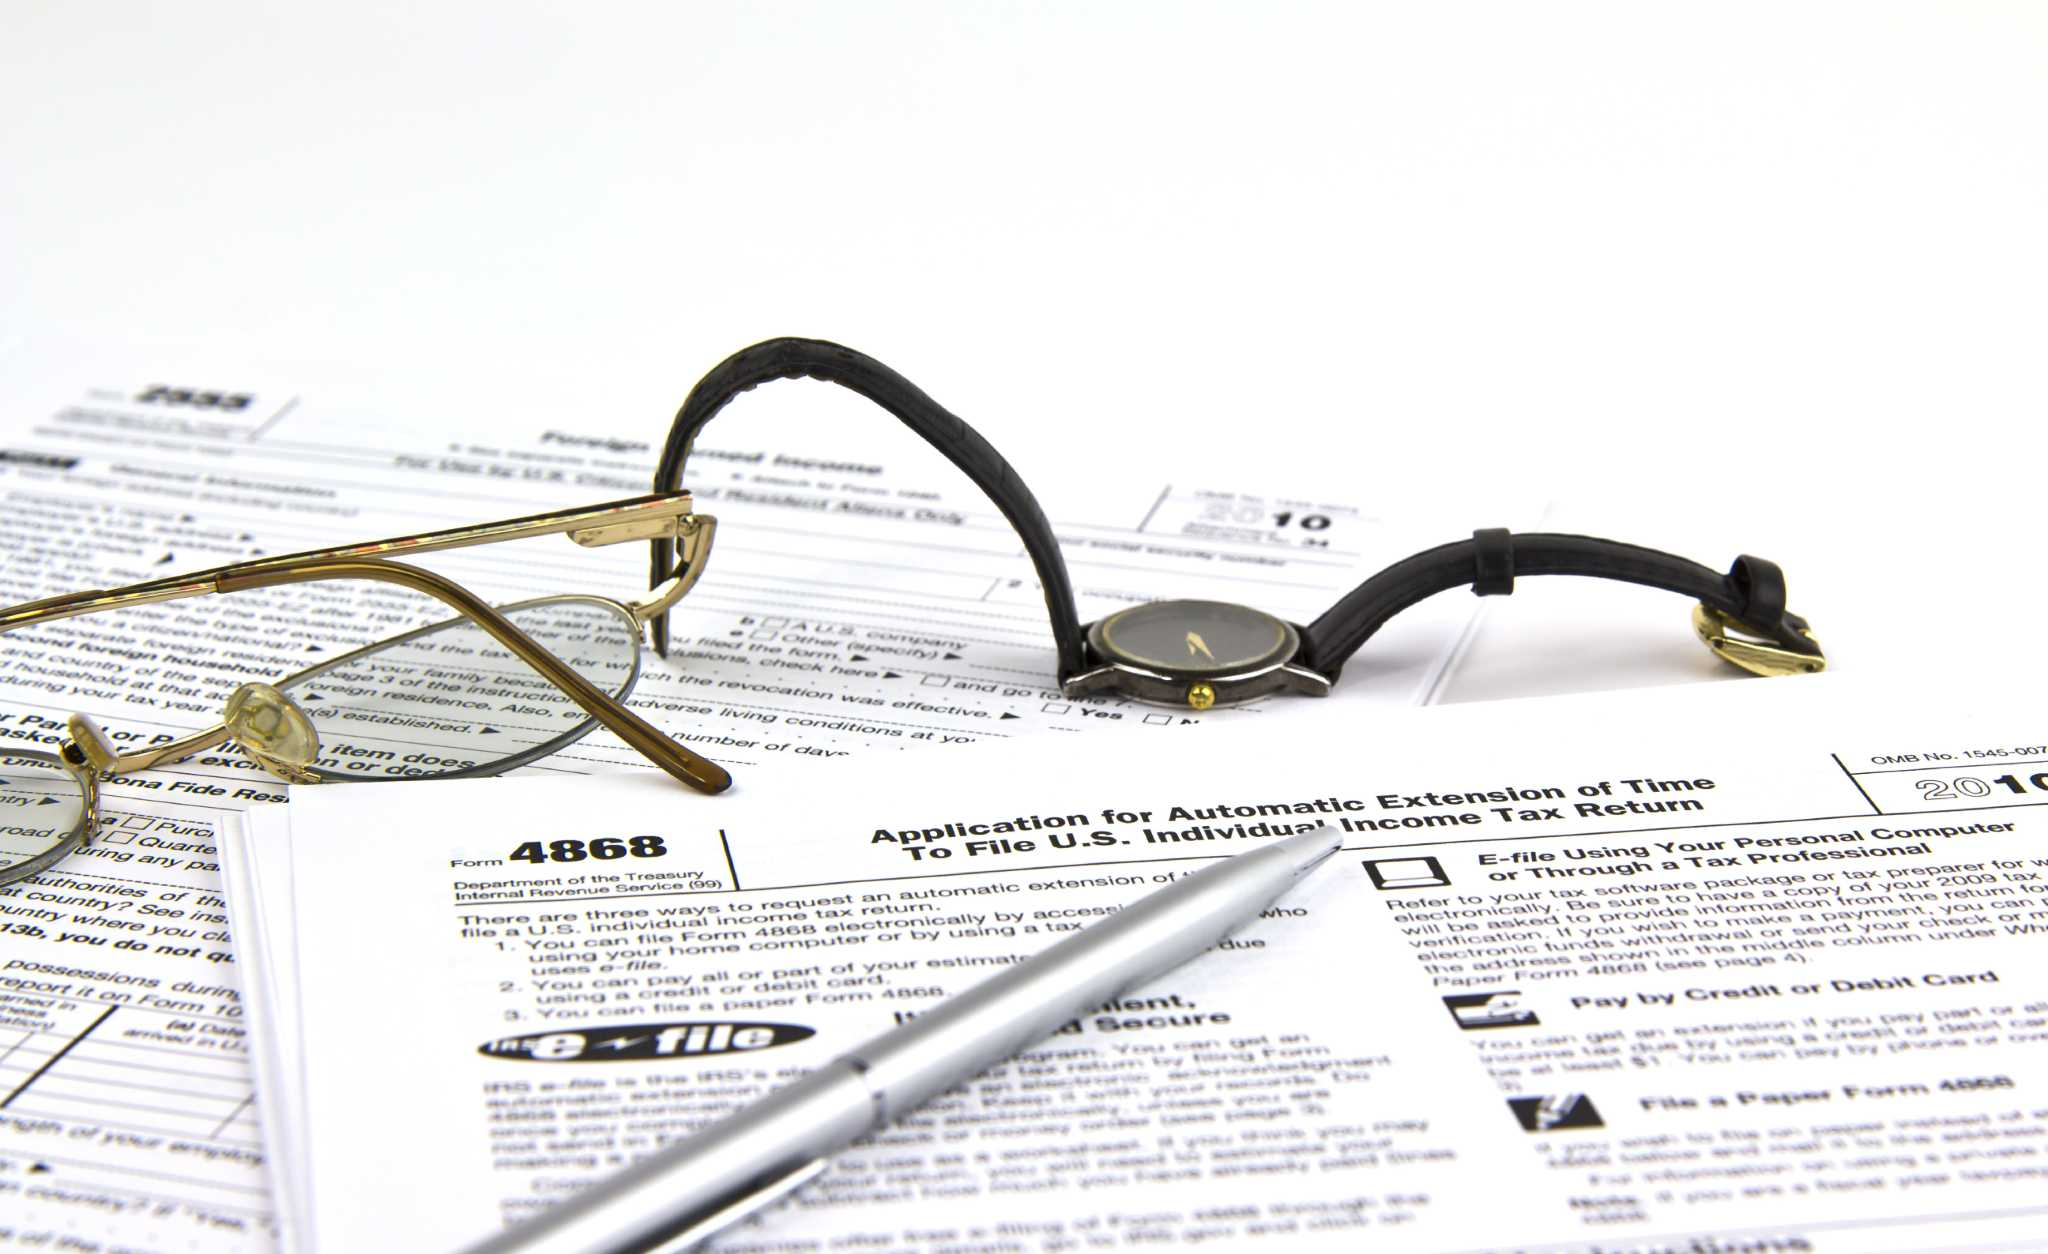 Taxes: Be wary of identity theft and refund fraud